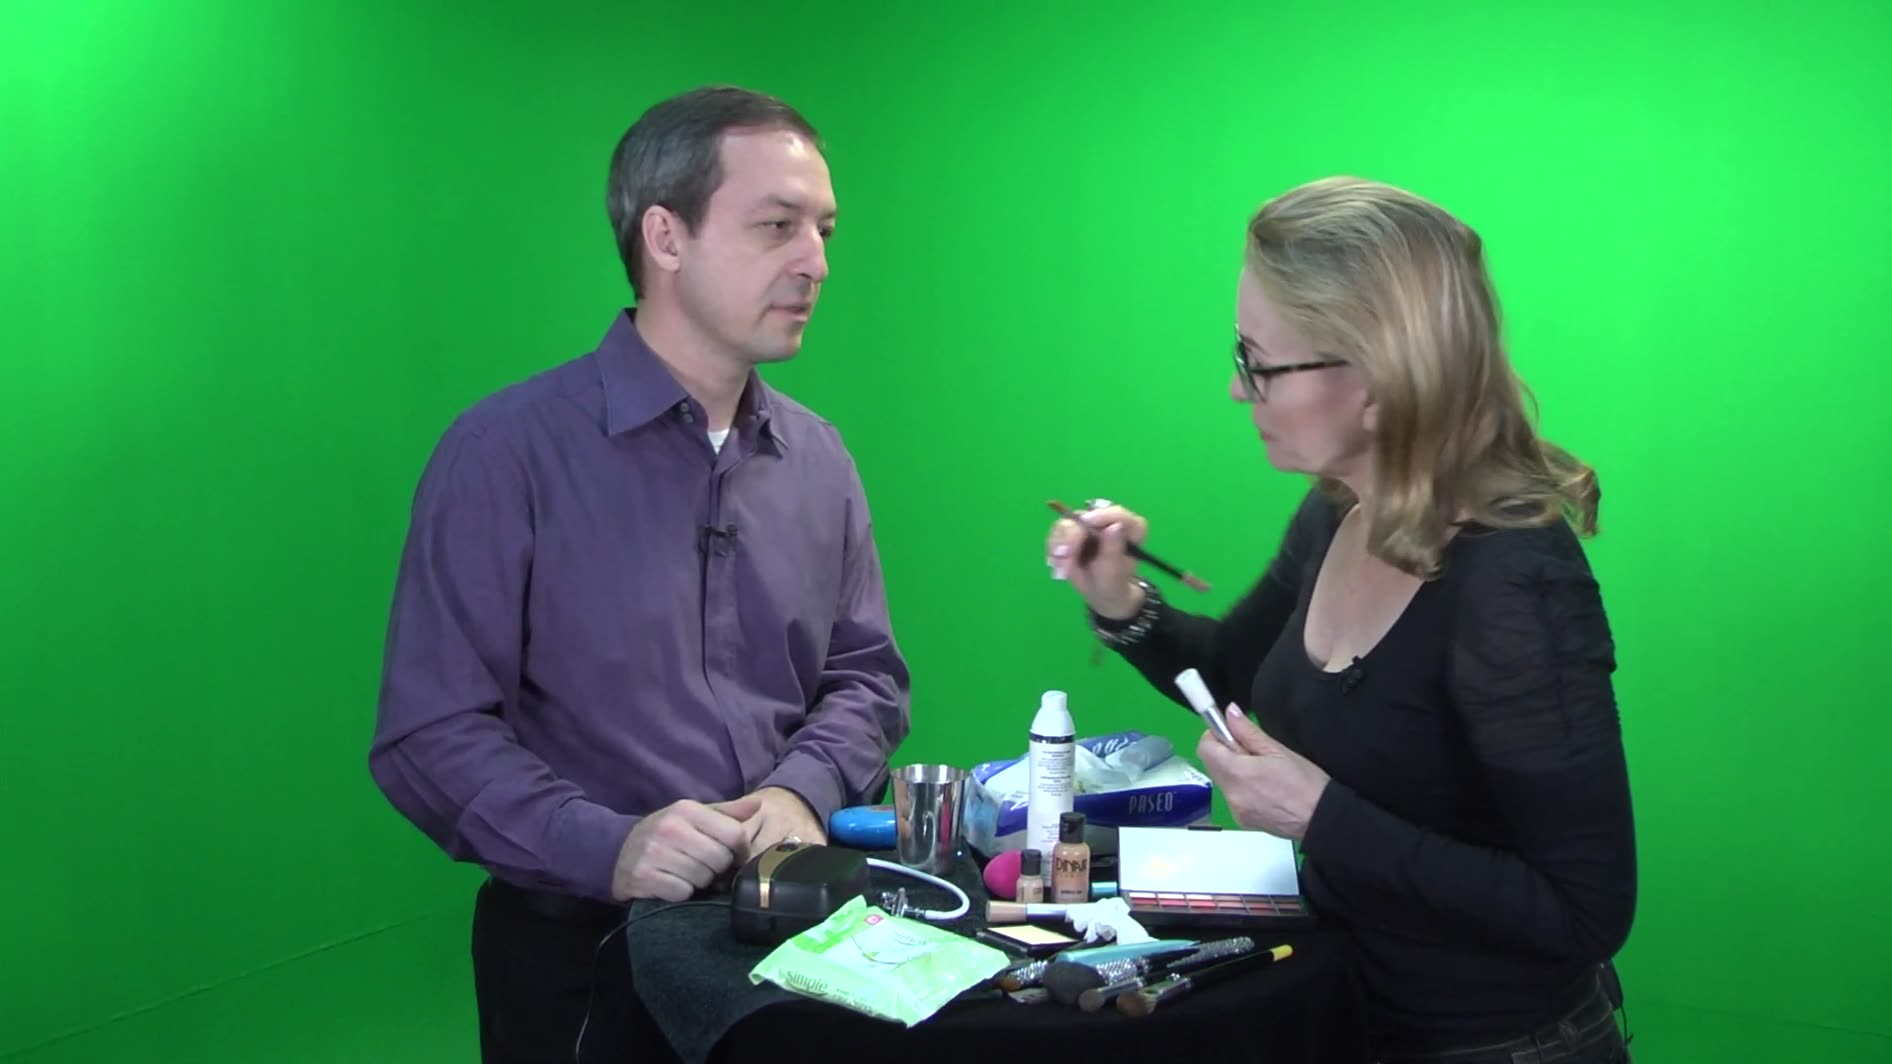 Video Savvy - Do you need make-up if you're shooting outdoors? (#5 of 6)